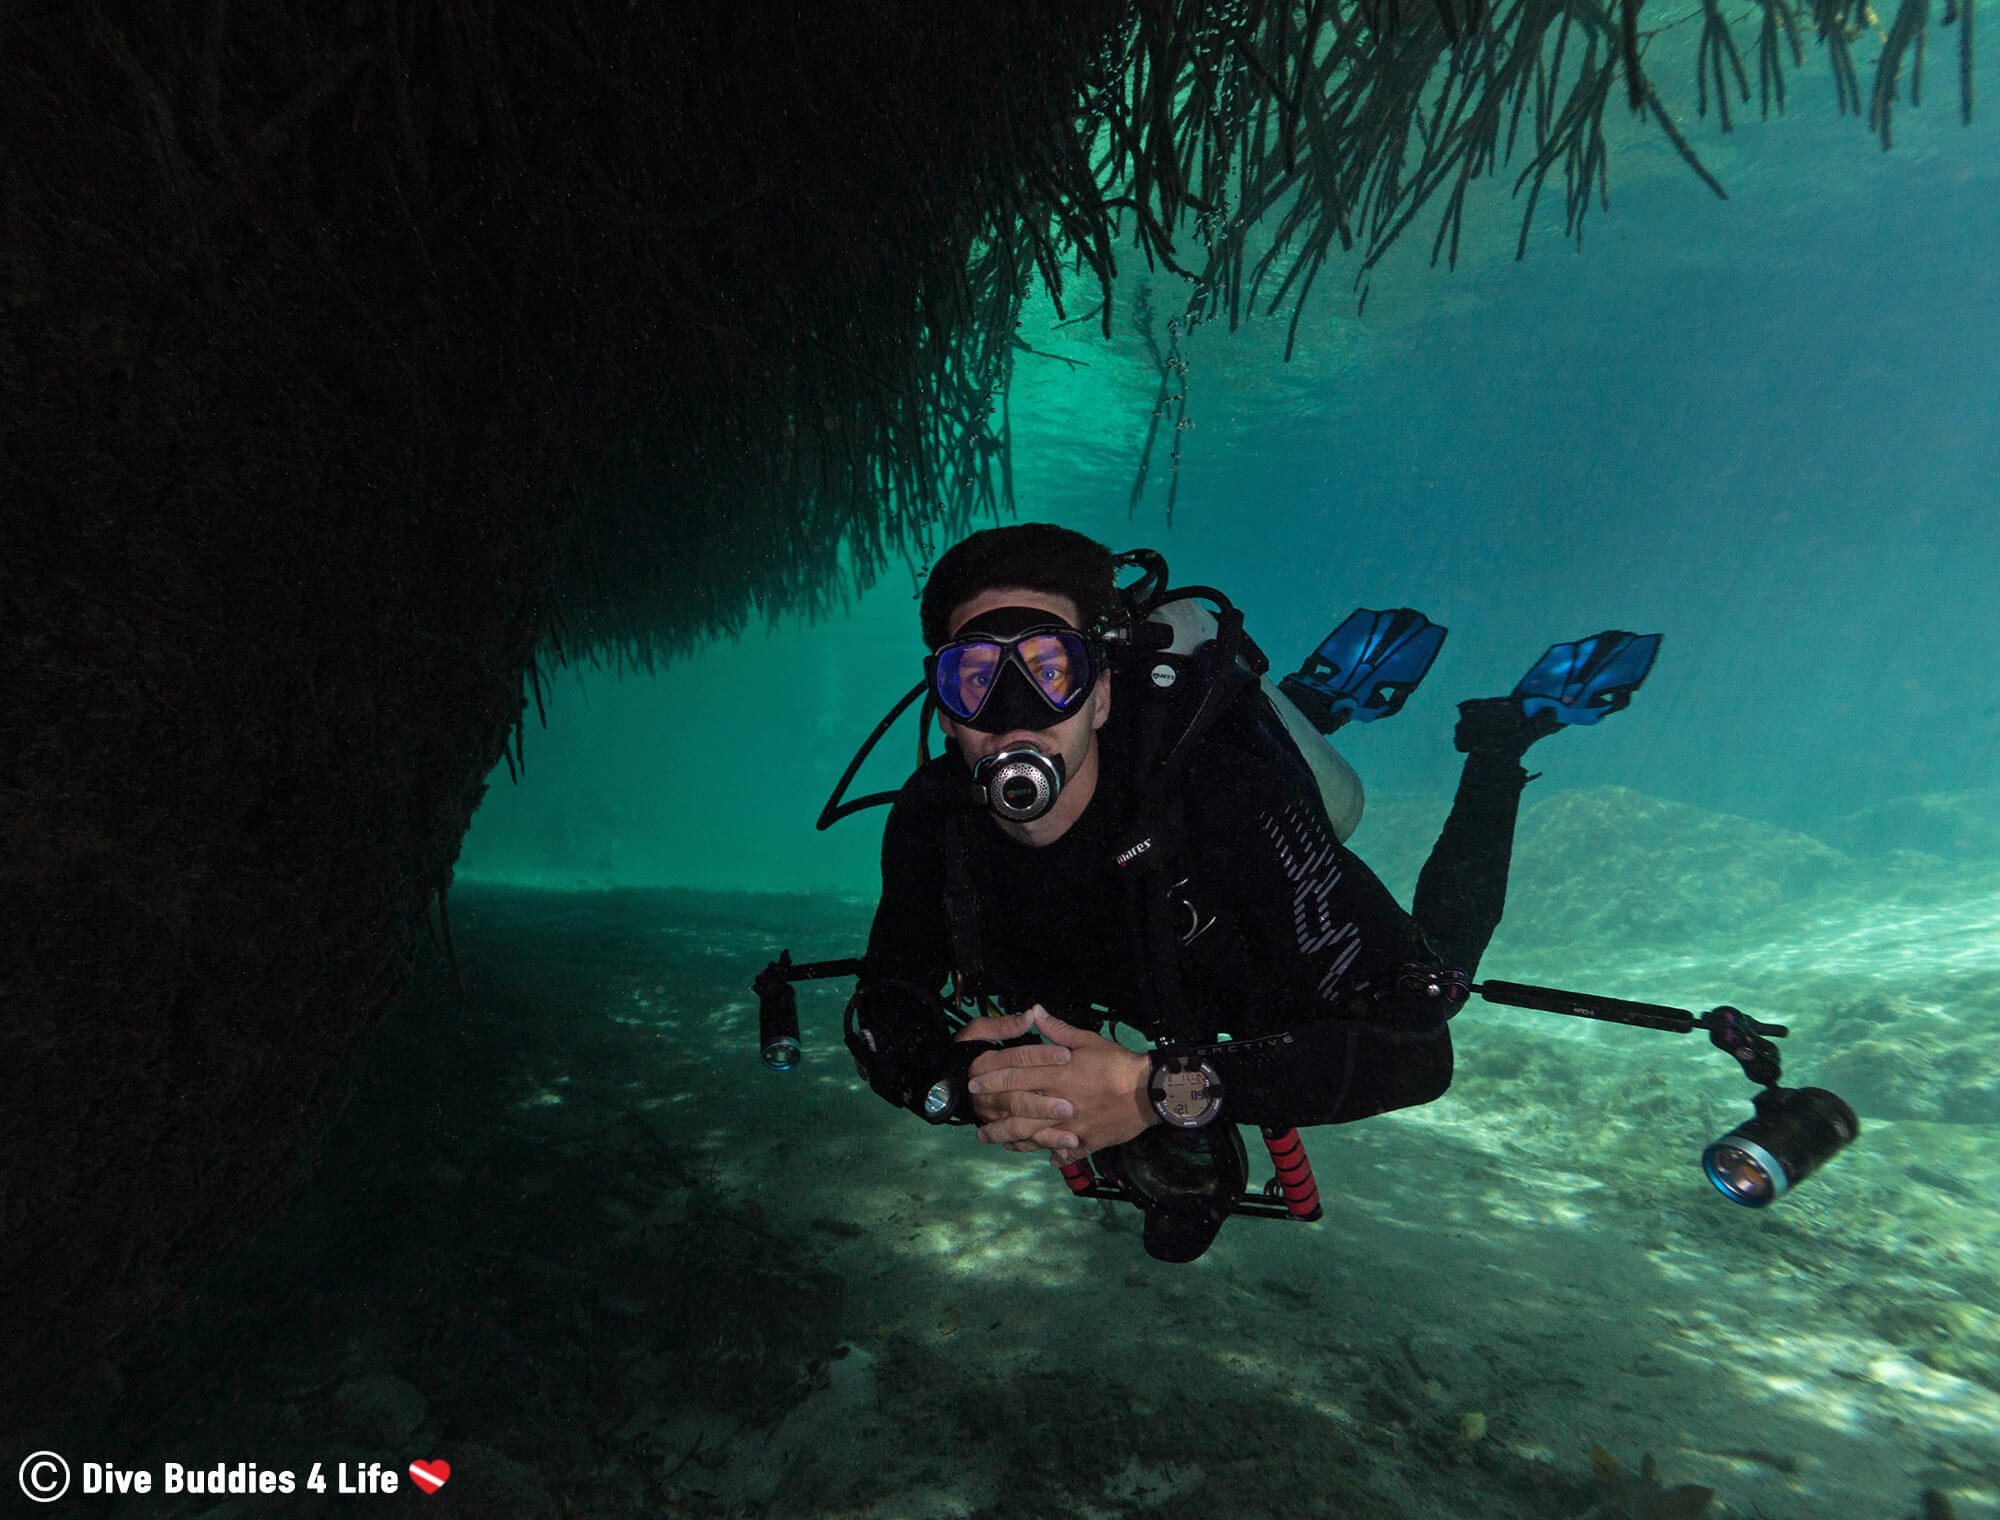 Joey Scuba Diving The Underwater Jungle Of Casa Cenote, Tulum, Mexico